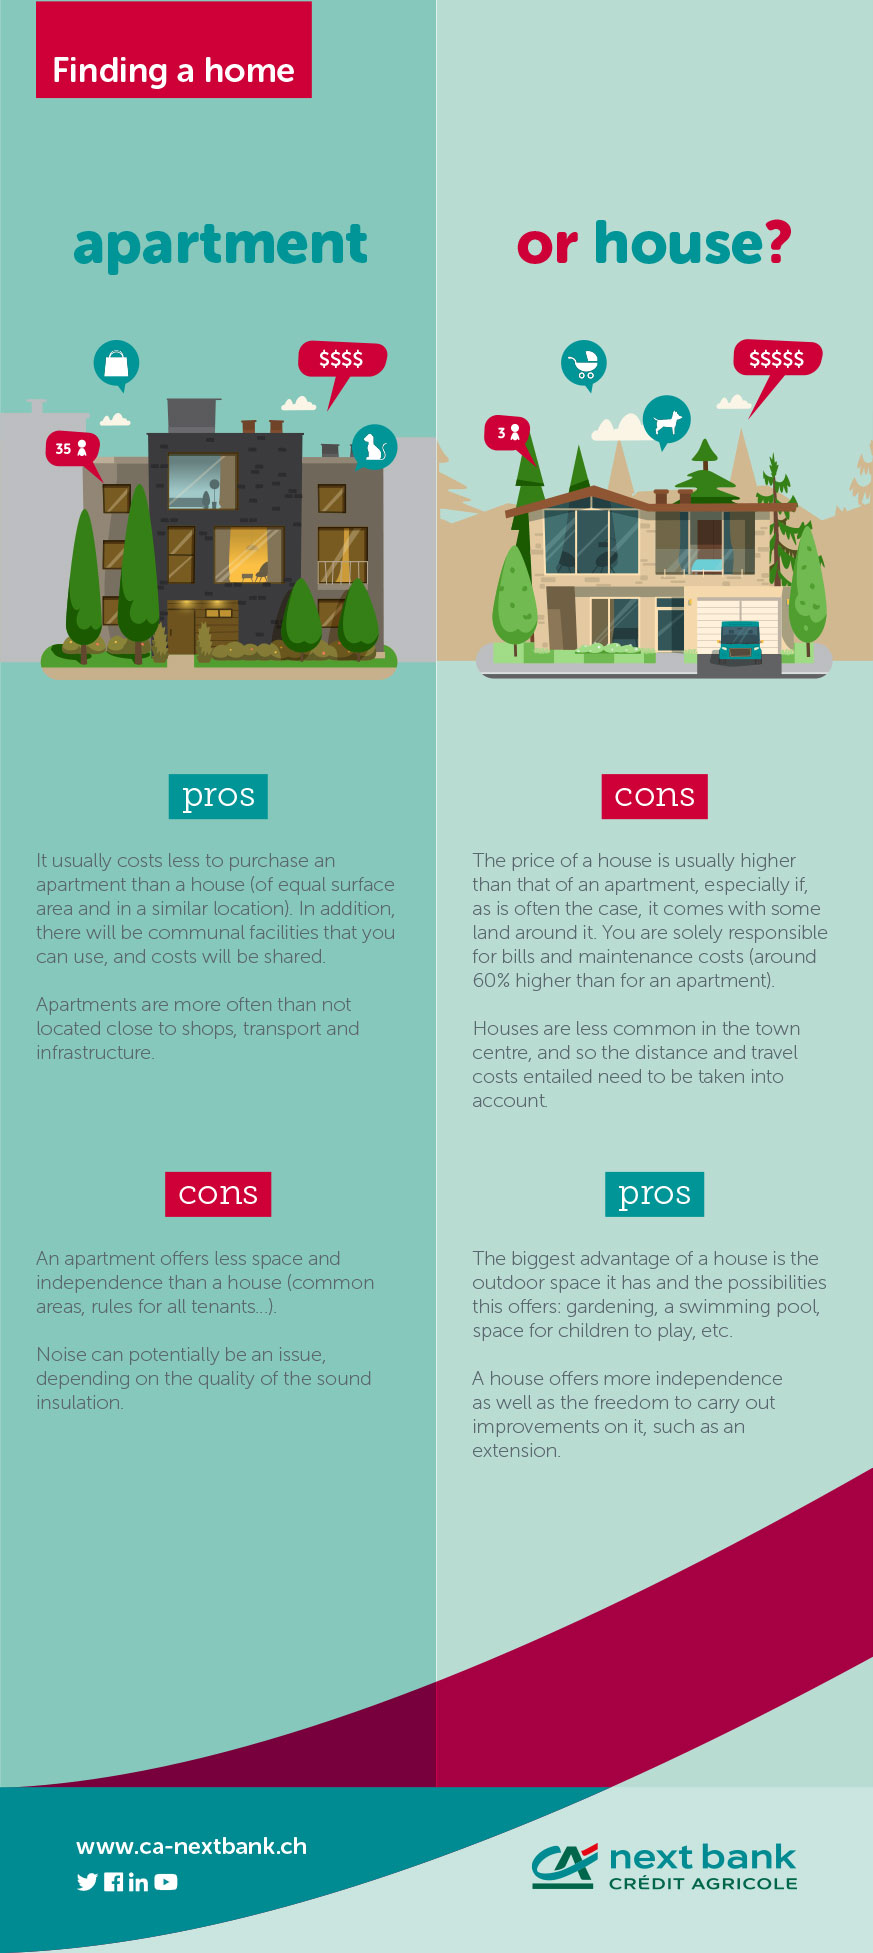 Apartment or house? The pros and cons